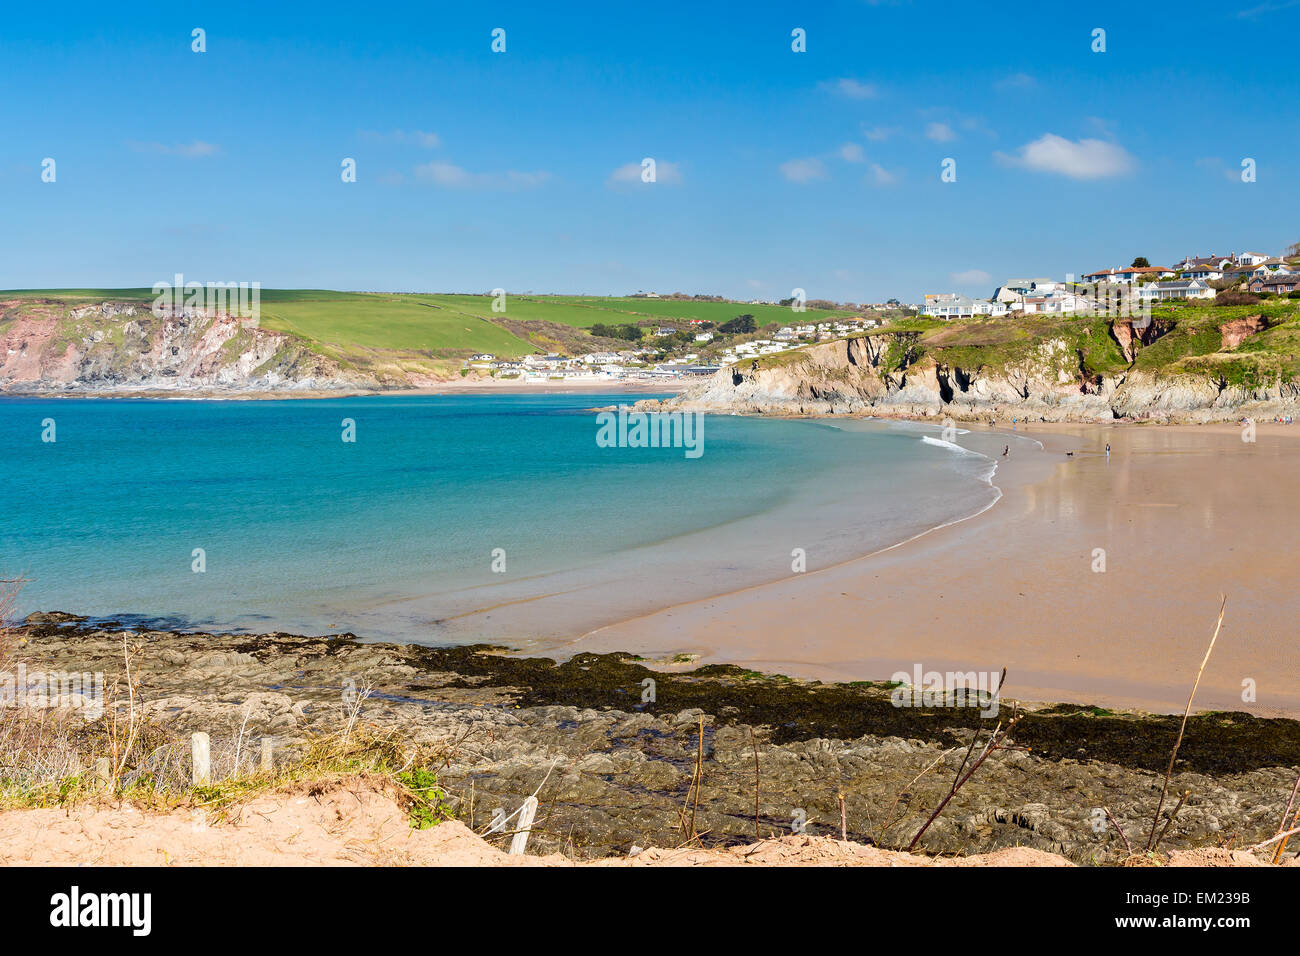 View towards Challaborough Bay from Burgh Island, South Hams Devon England UK Europe - Stock Image